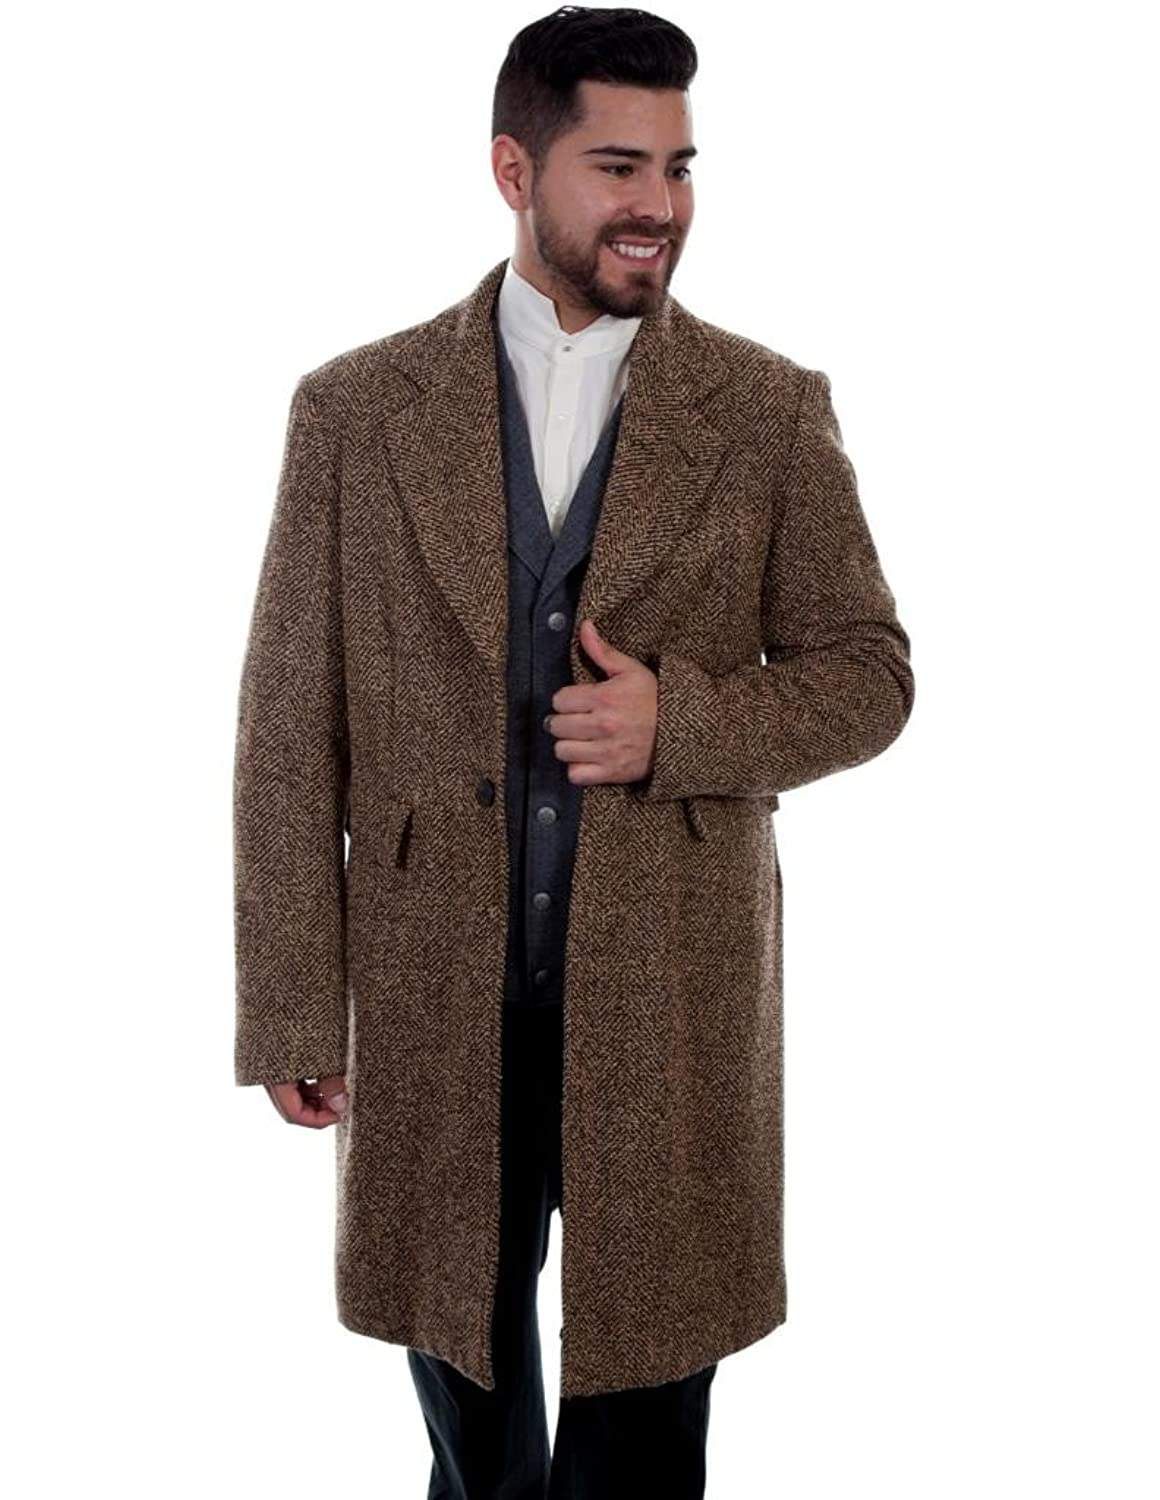 Retro Clothing for Men | Vintage Men's Fashion Scully Western Coat Mens Herringbone Frock Button Flap Pockets 521129 $239.95 AT vintagedancer.com